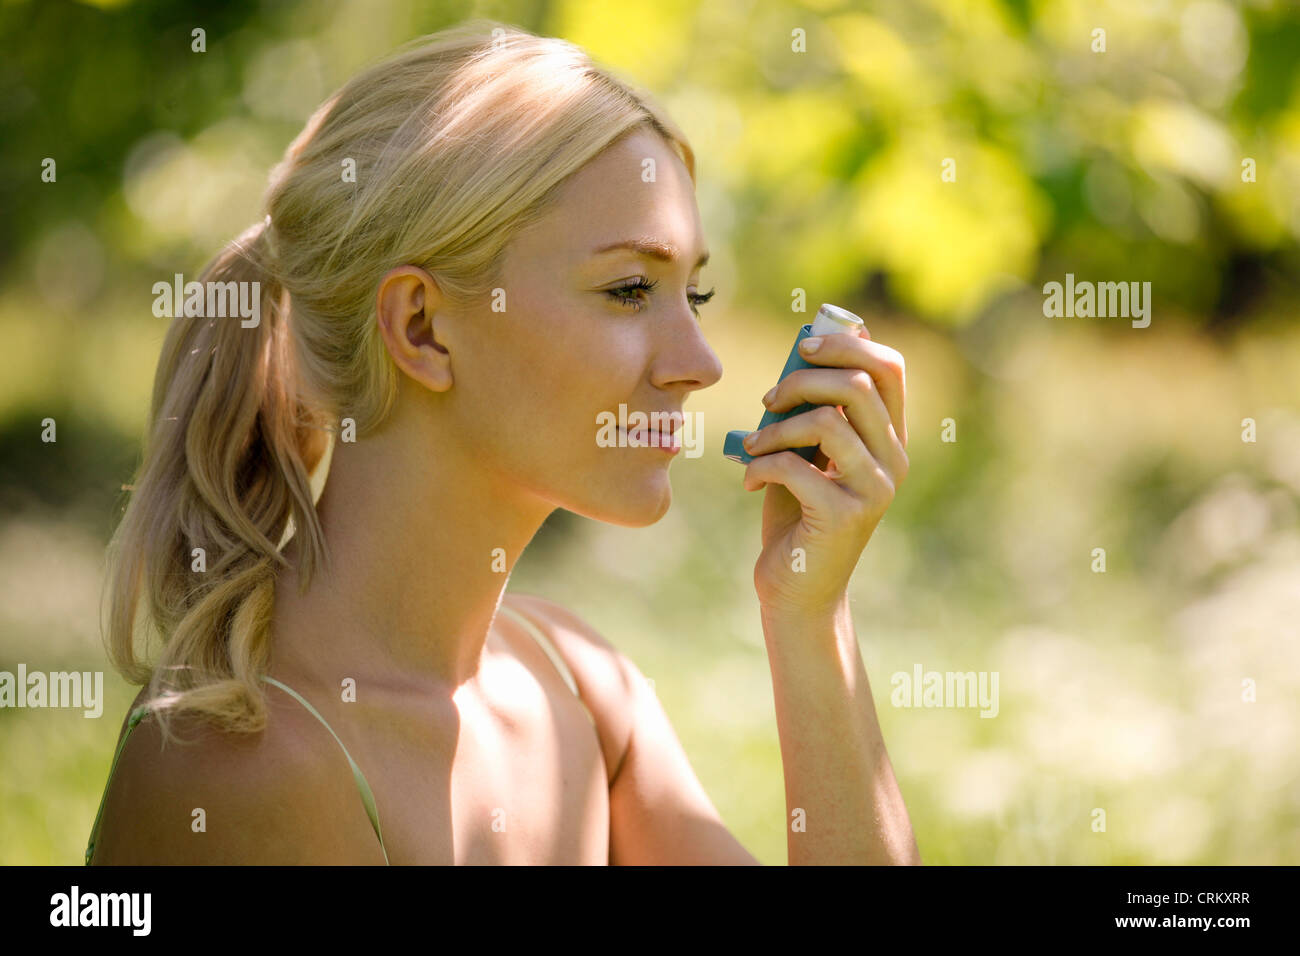 A young blond woman sitting in the grass using a asthma inhaler - Stock Image